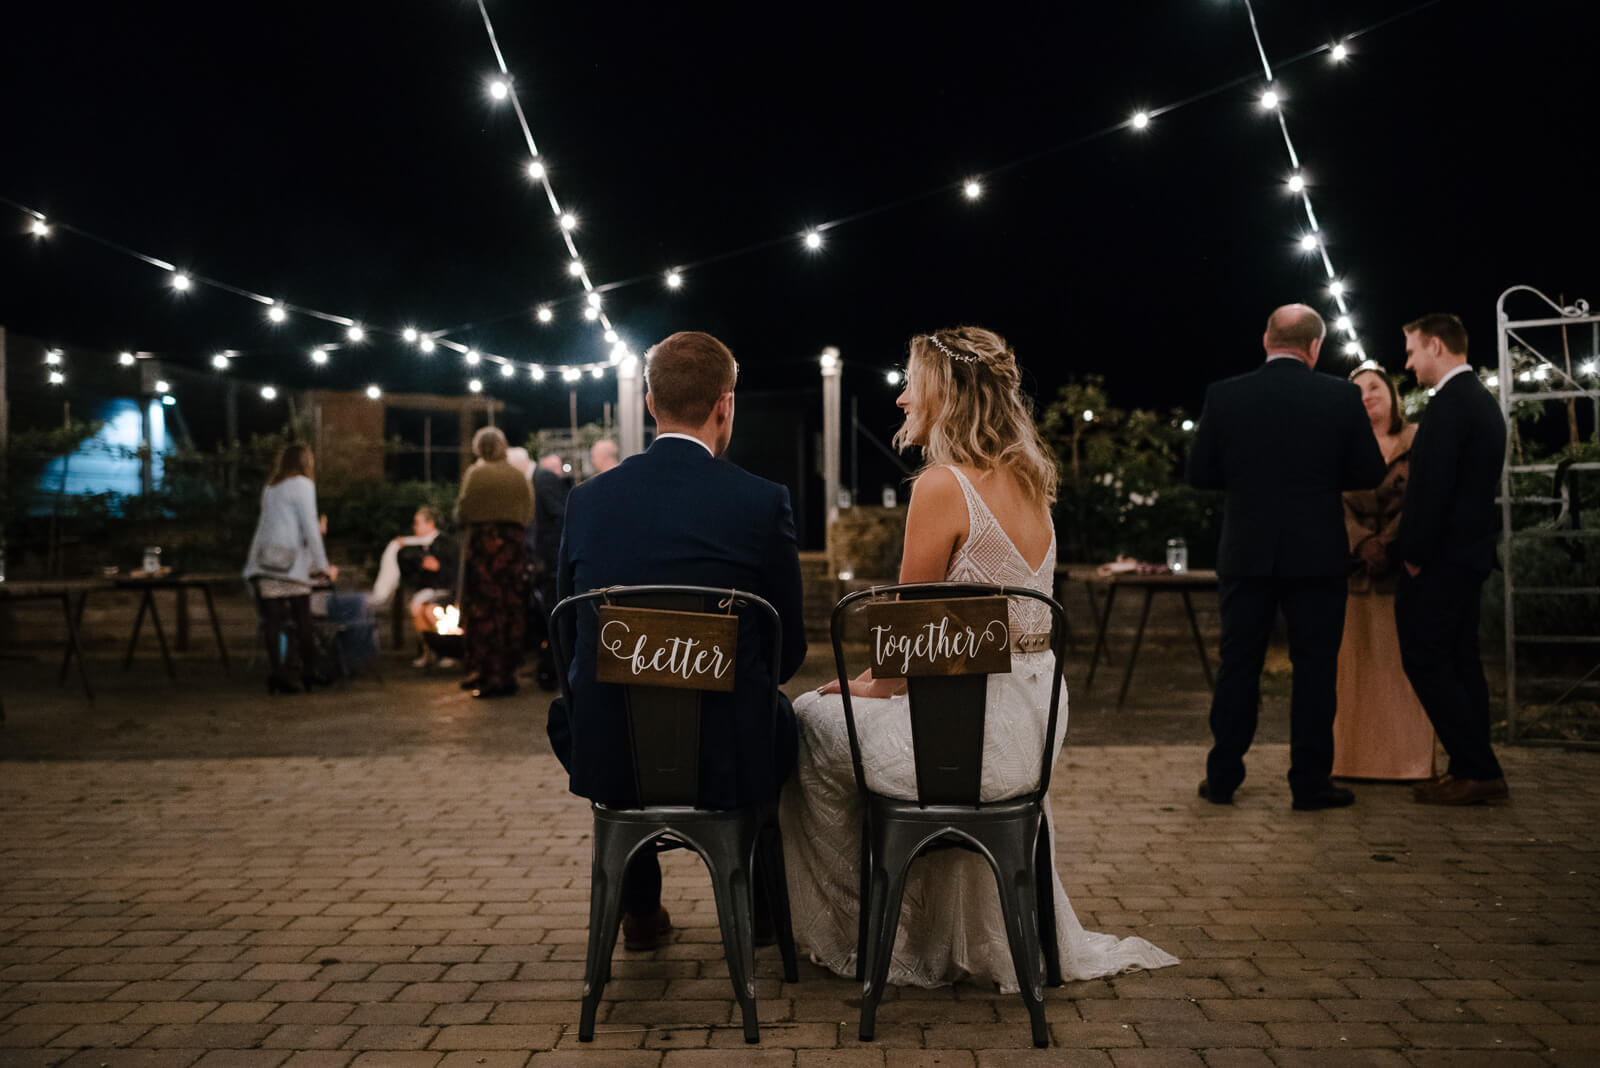 bride and groom sitting on chairs with 'better togethe